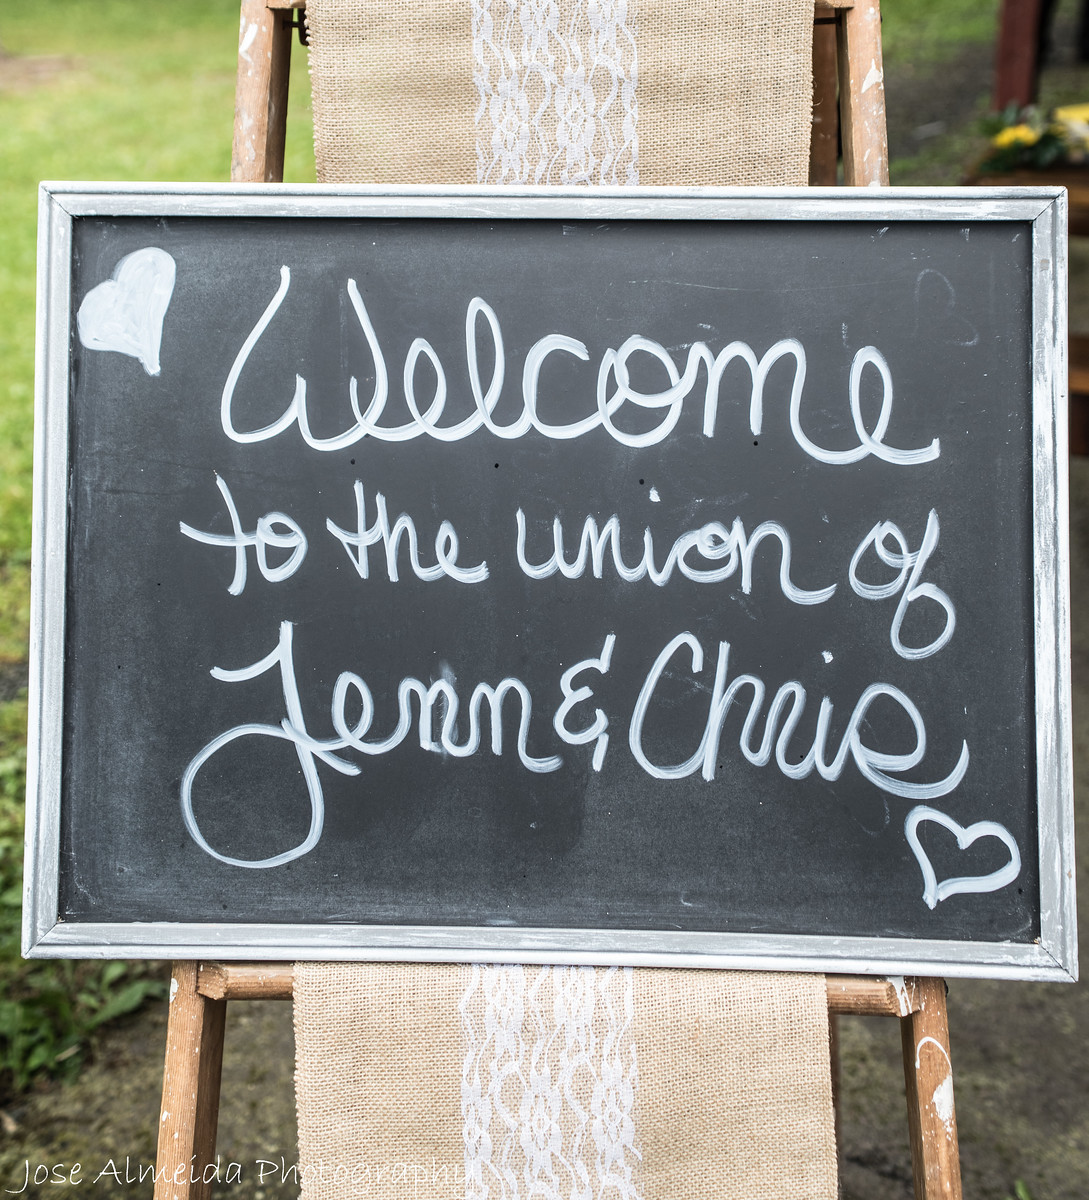 Jenn & Chris - June 17th, 2017